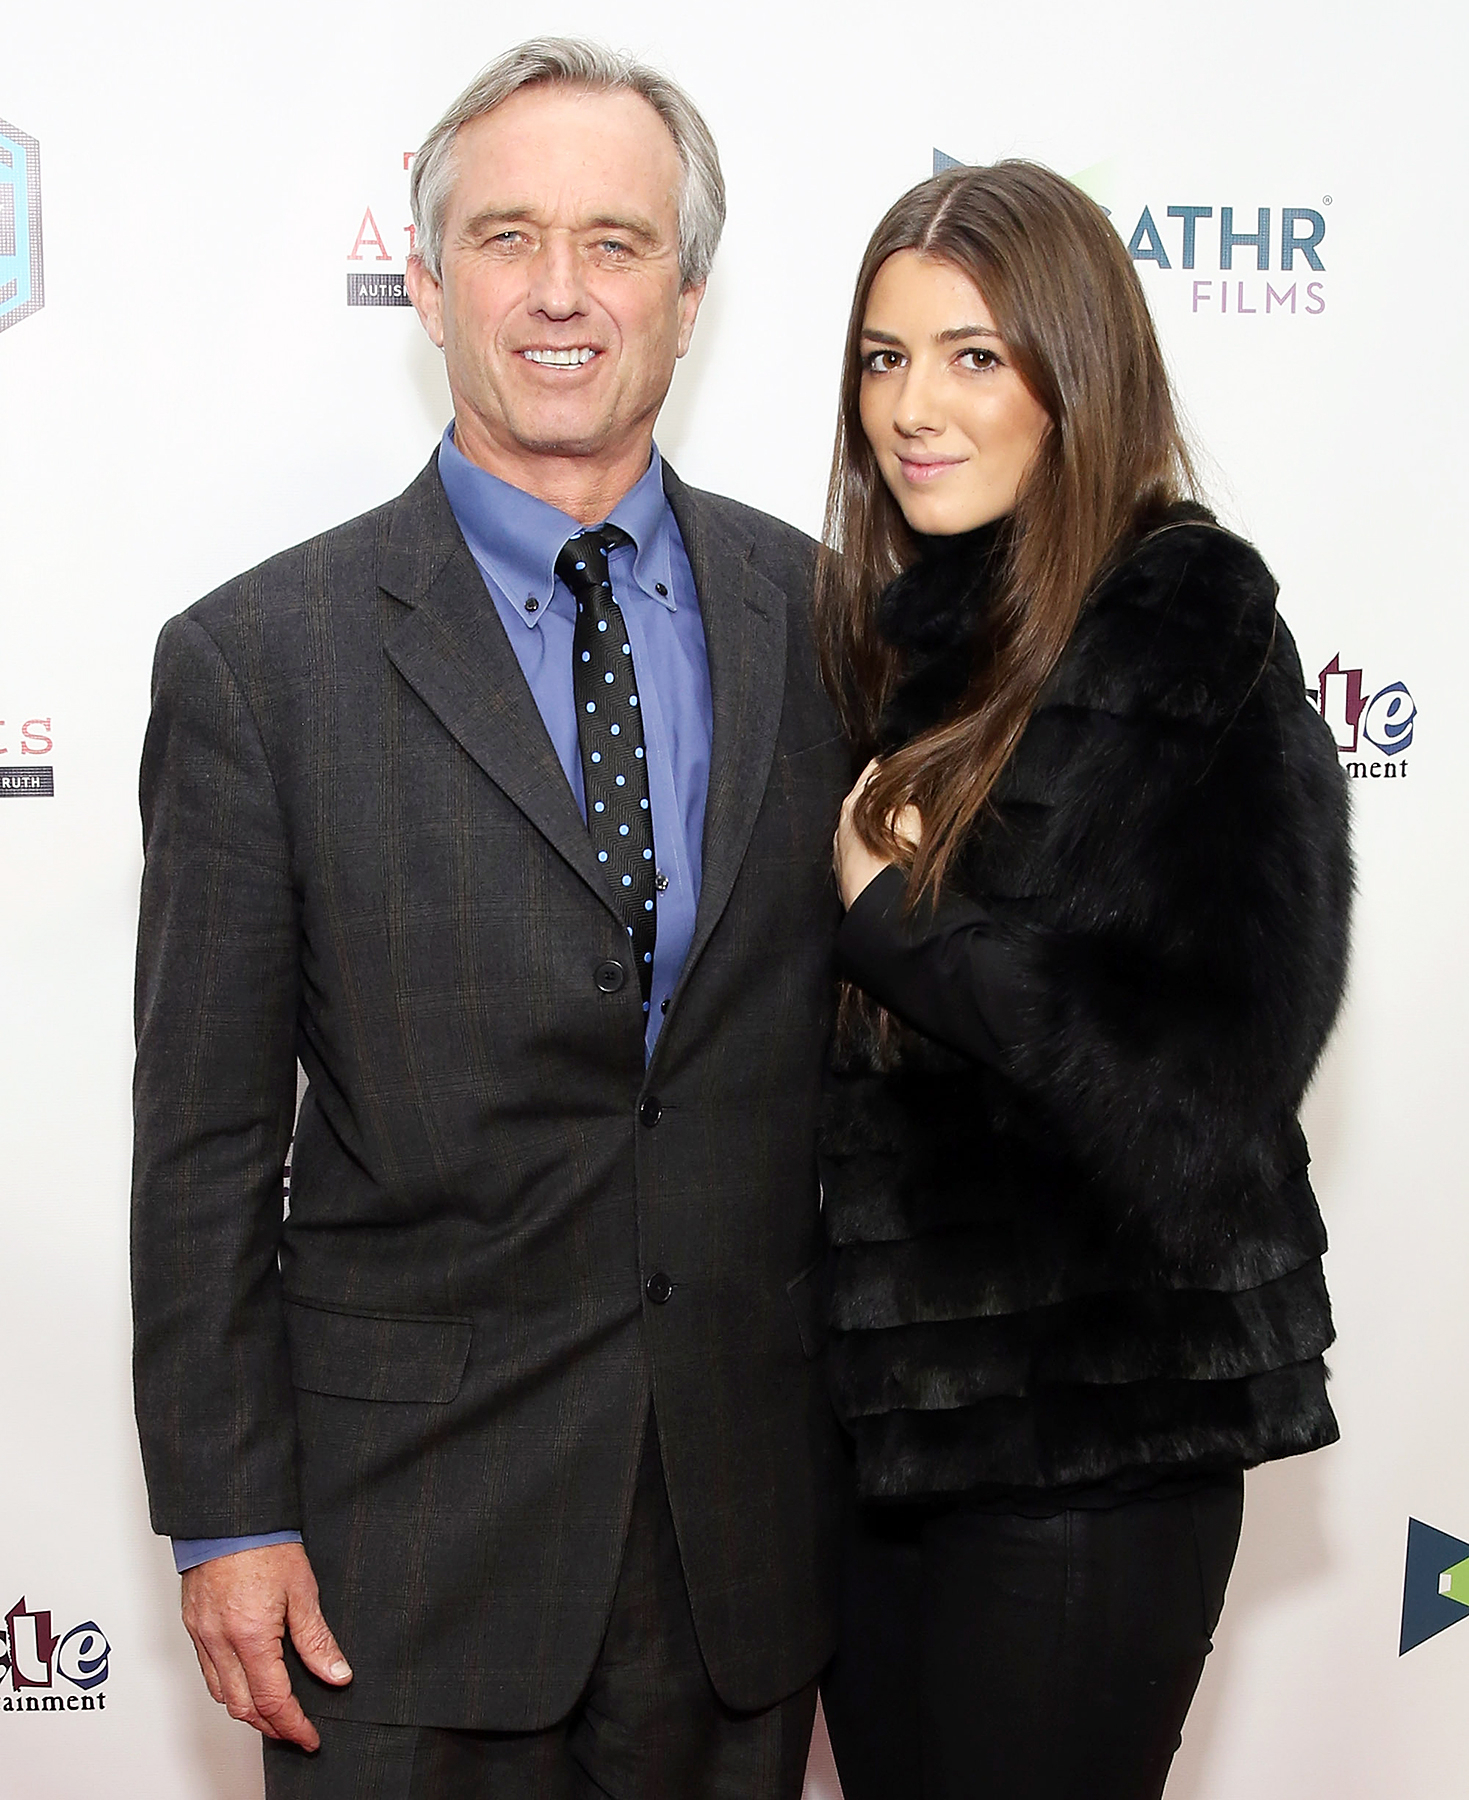 Robert F. Kennedy Jr. and daughter Kyra Kennedy